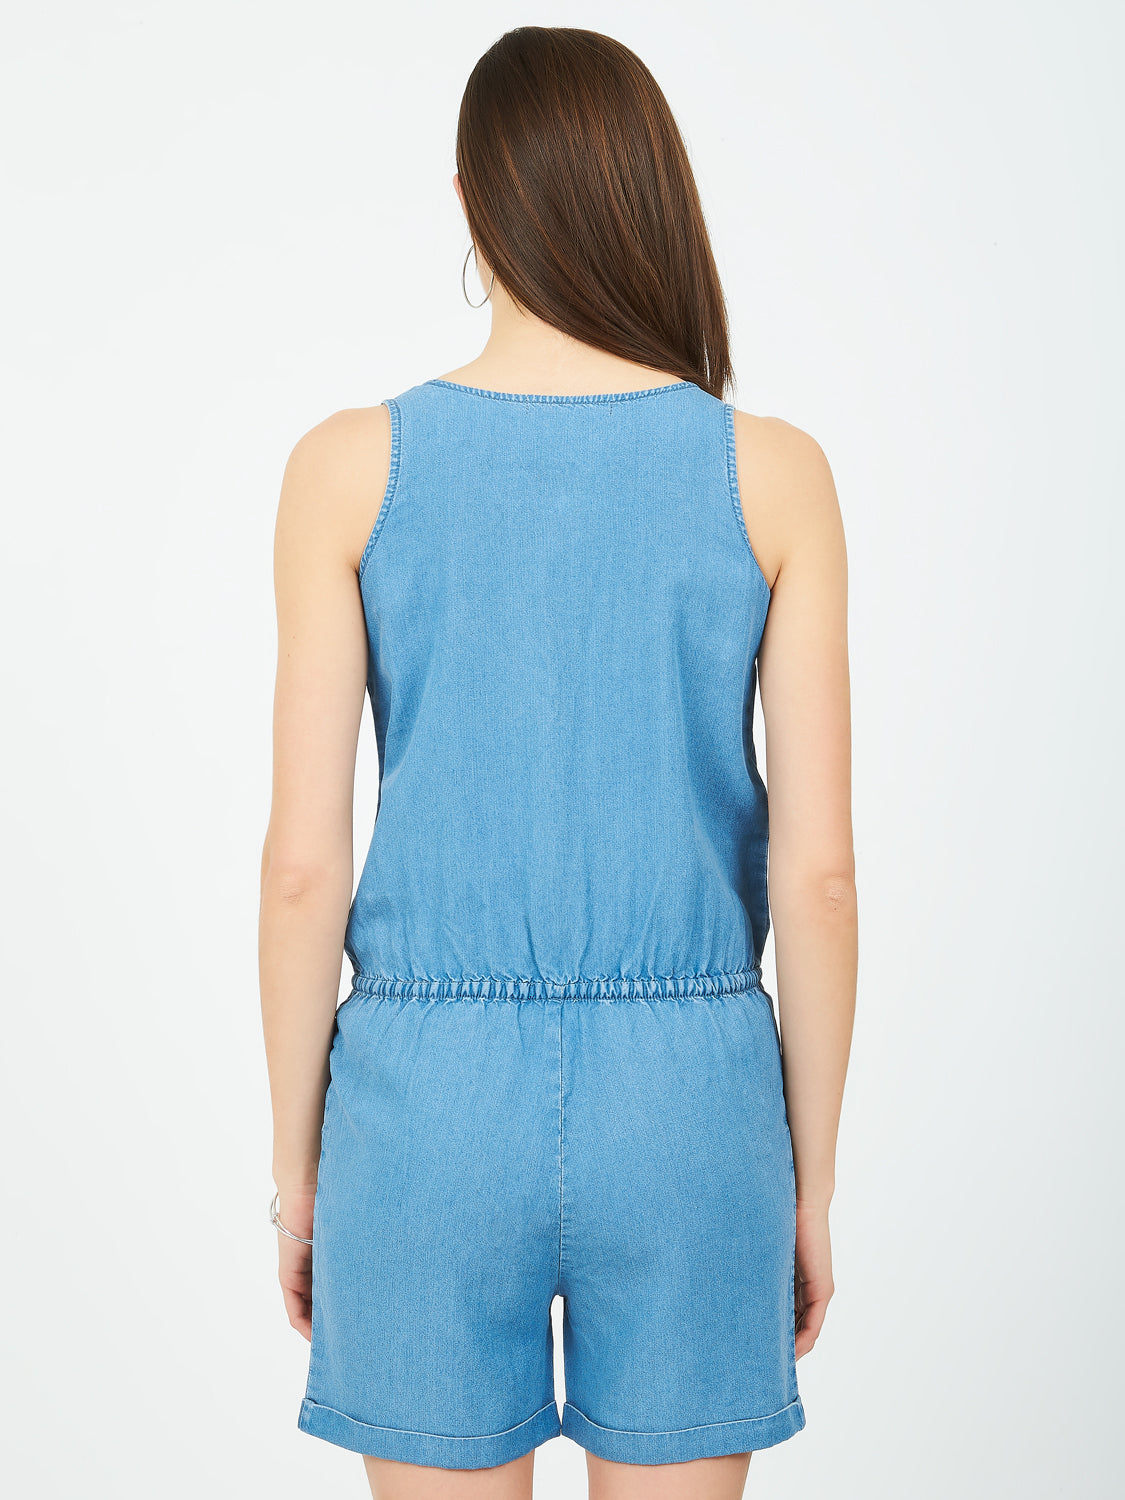 Sleeveless Denim Romper